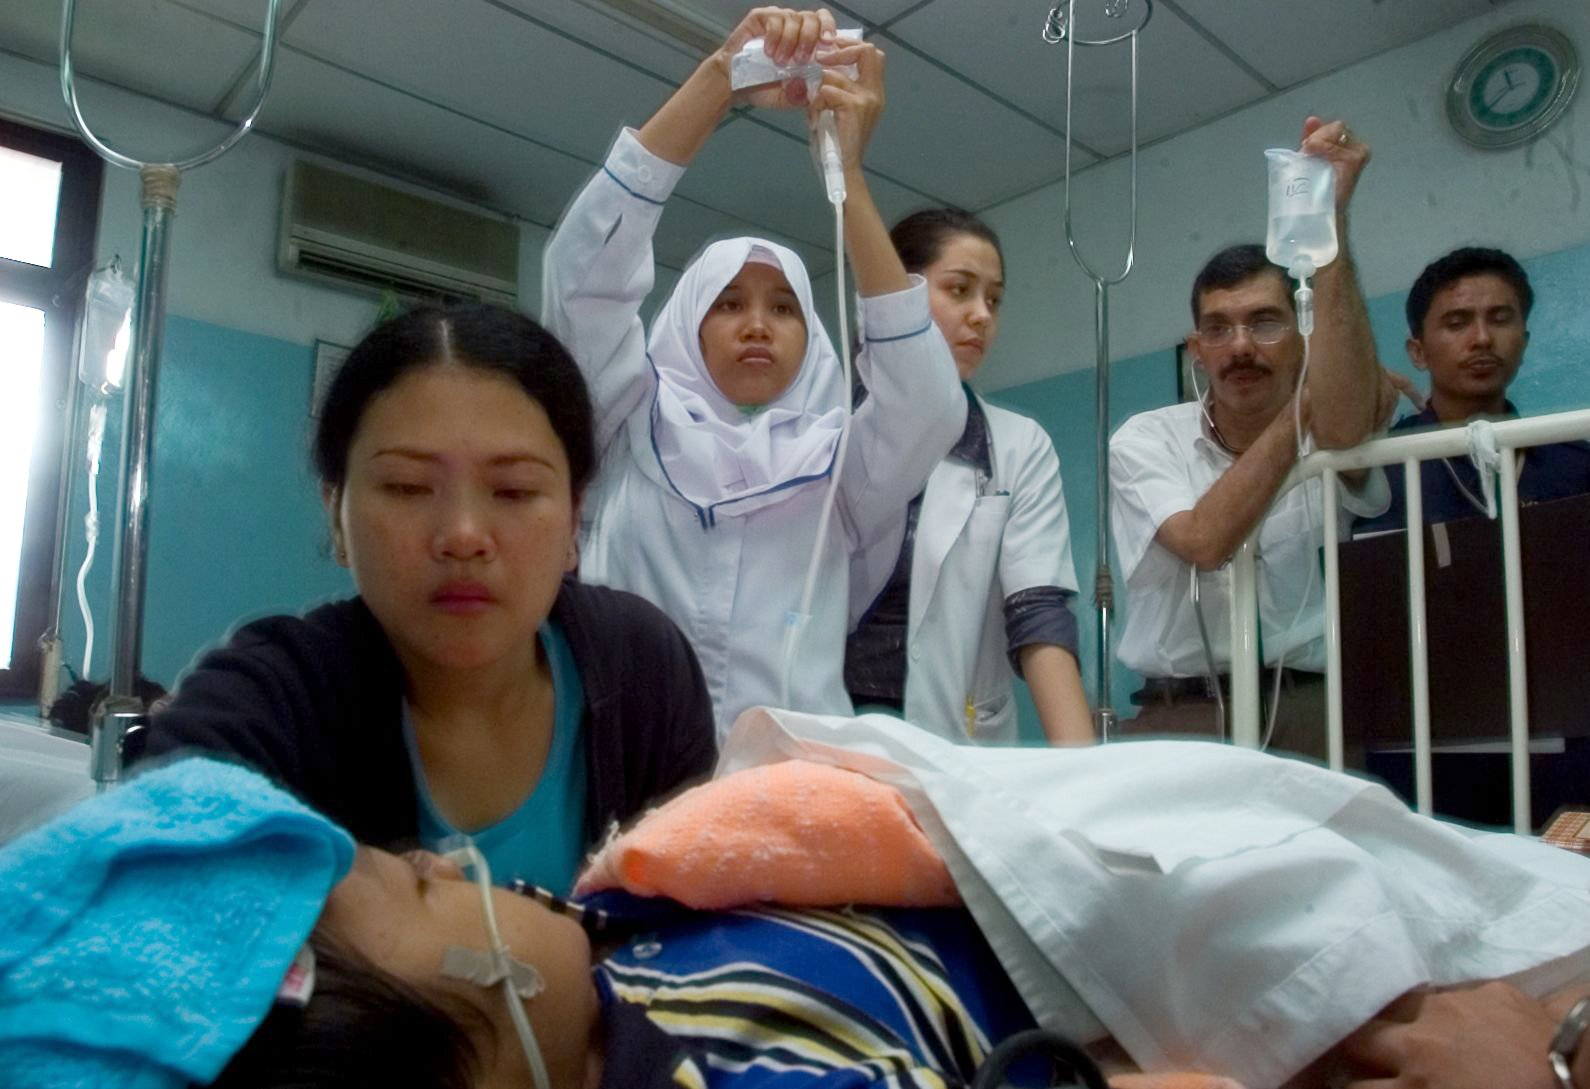 Malaria continues to remain a serious health concern in Indonesia